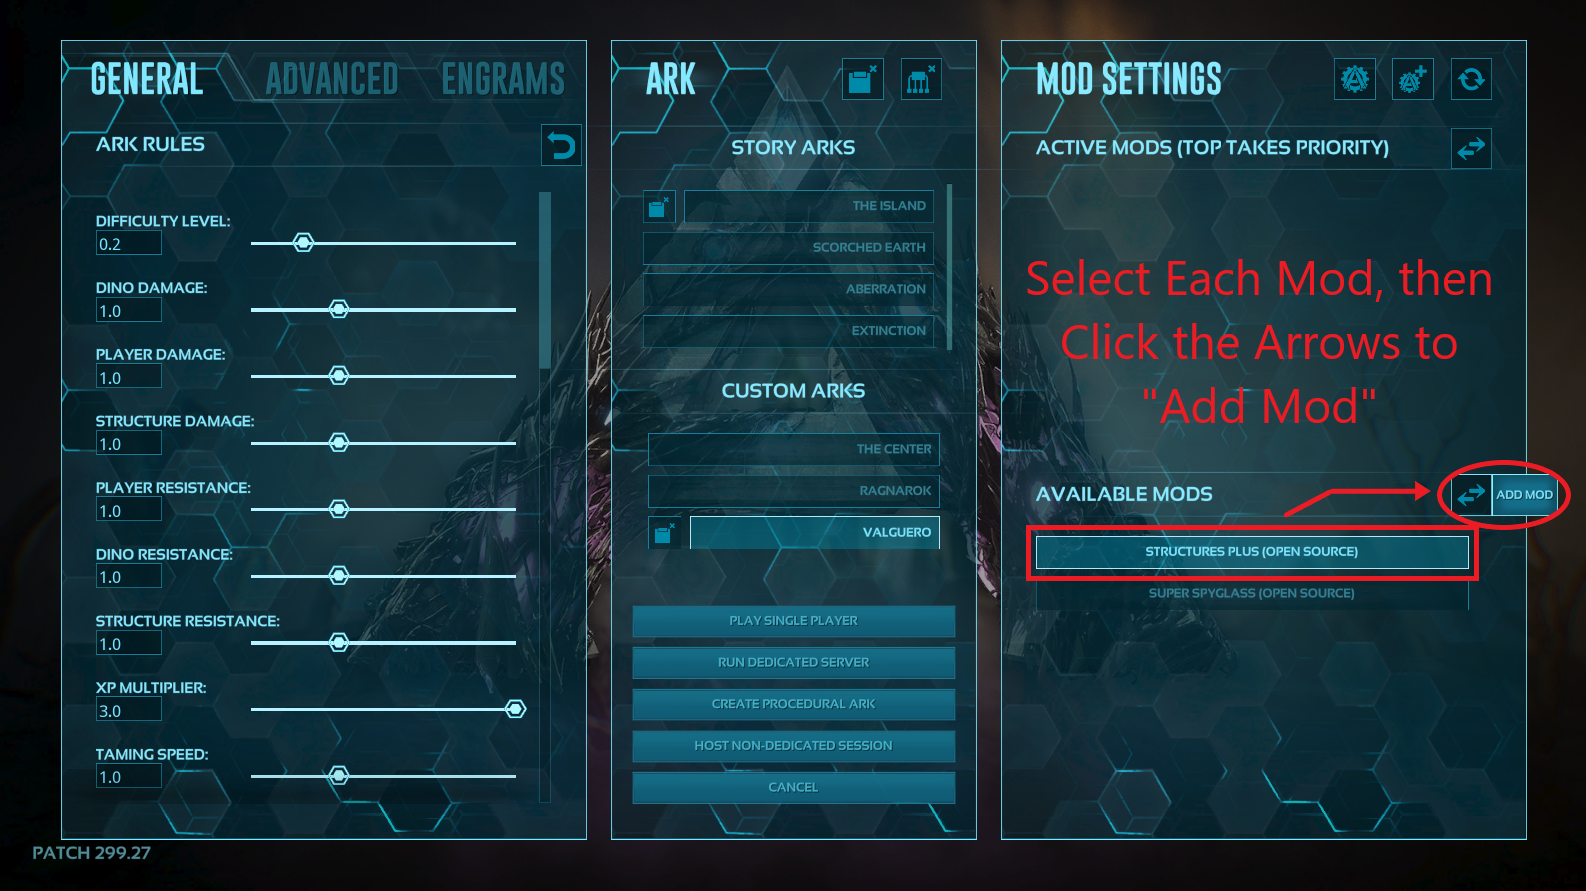 A view of the control panel for creating a single player game in ark, showing how to activate mods